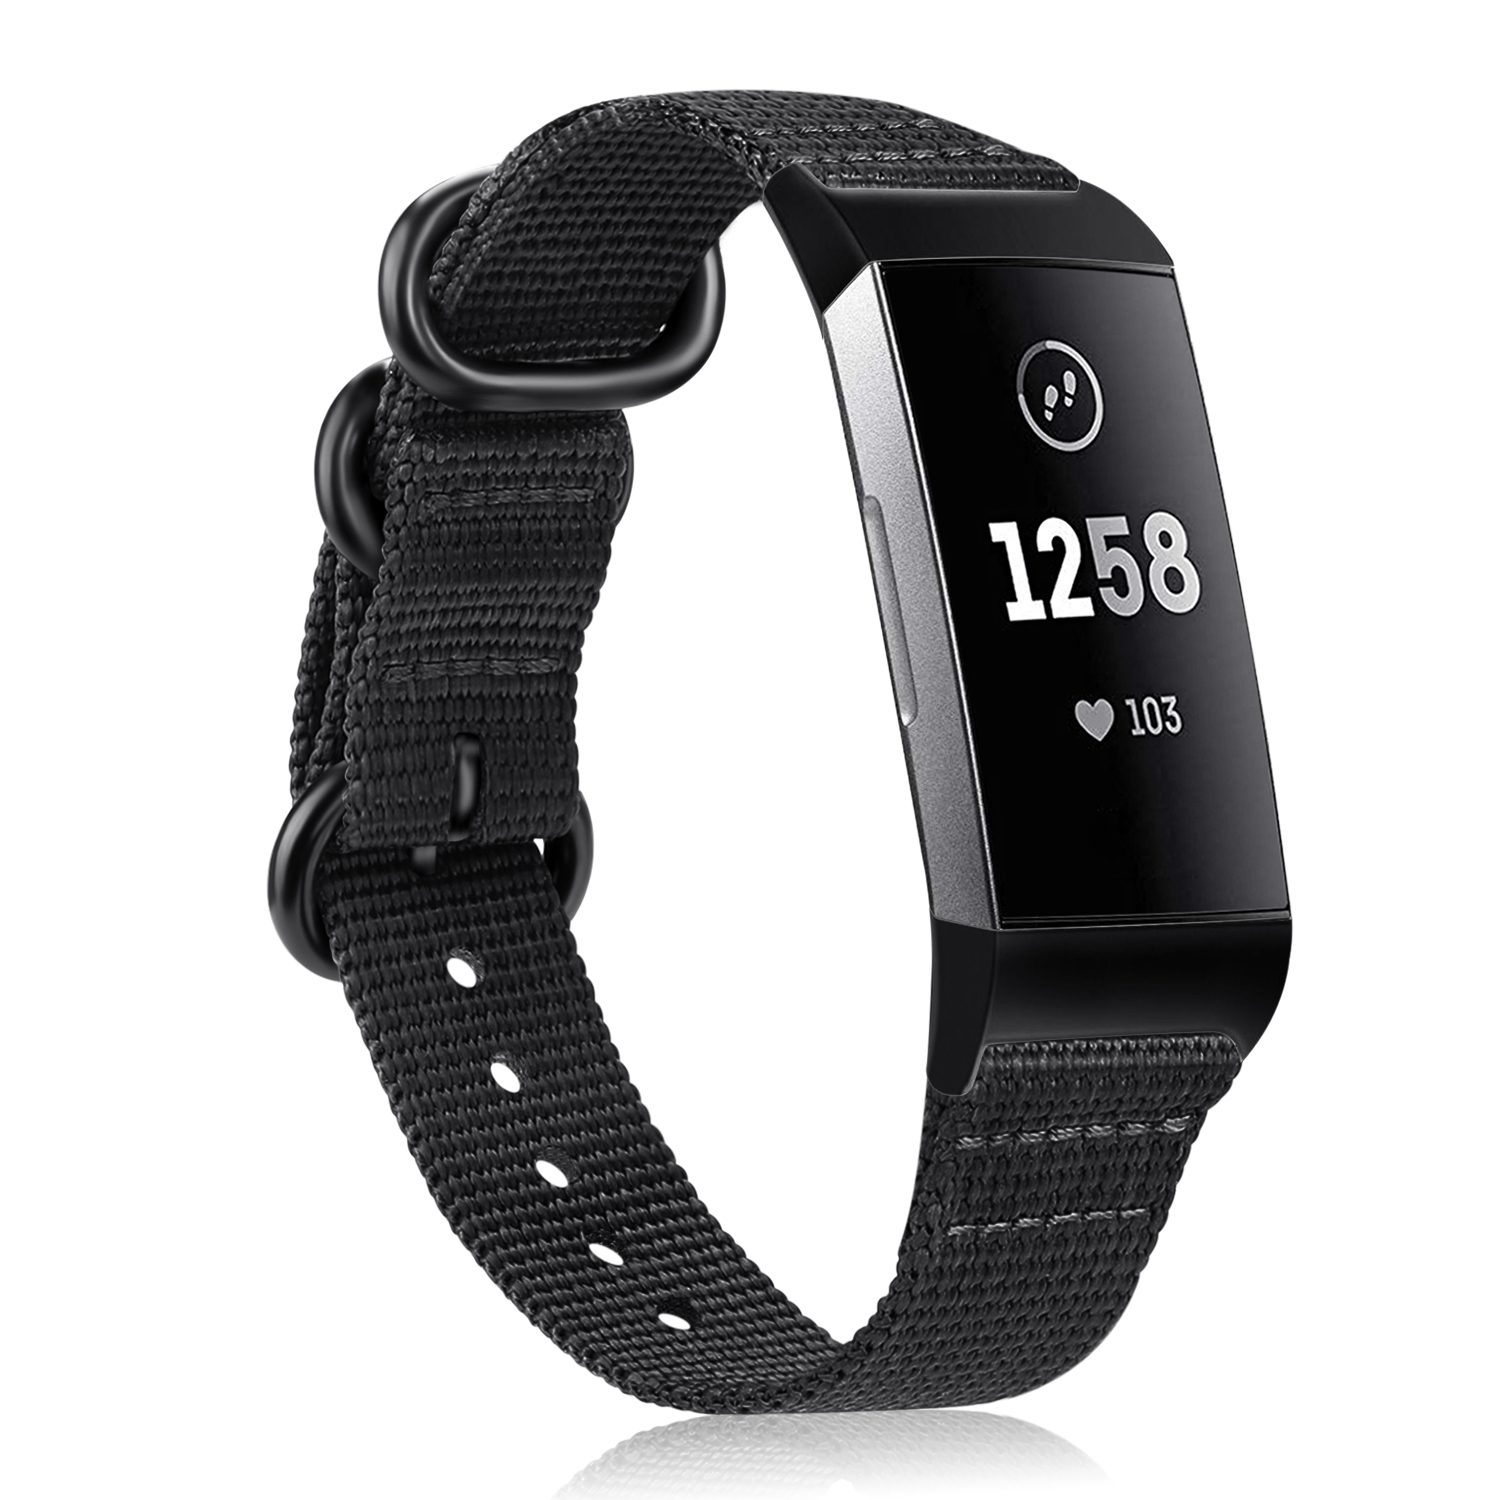 Fintie Bands for Fitbit Charge 3 SE Fitness Activity Tracker, Soft Woven Nylon Sports Band Replacement Strap Black